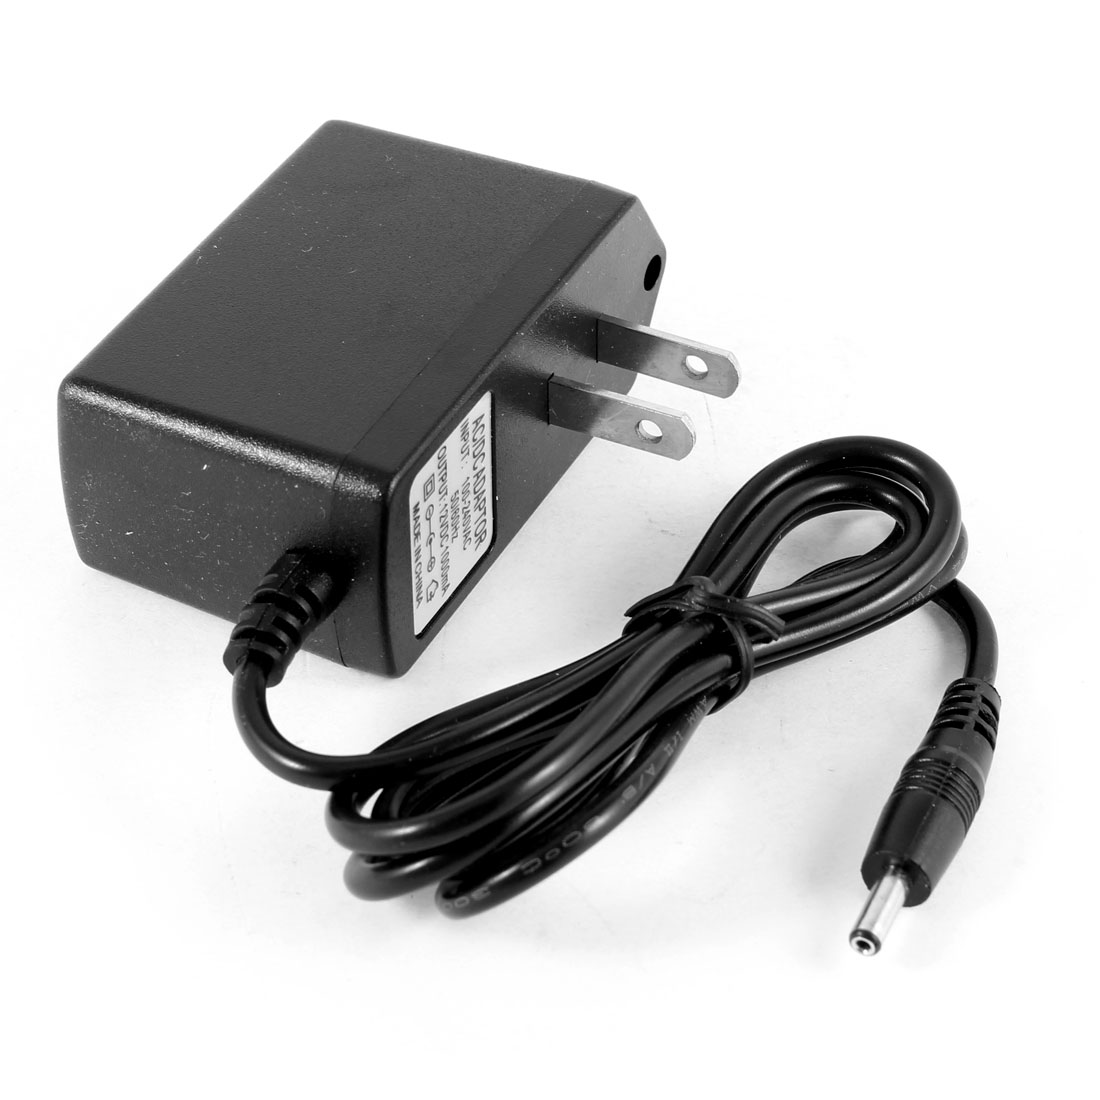 US-Plug-100V-240V-AC-12V-1A-DC-Output-Power-Adapter-for-CCTV-Security-Camera